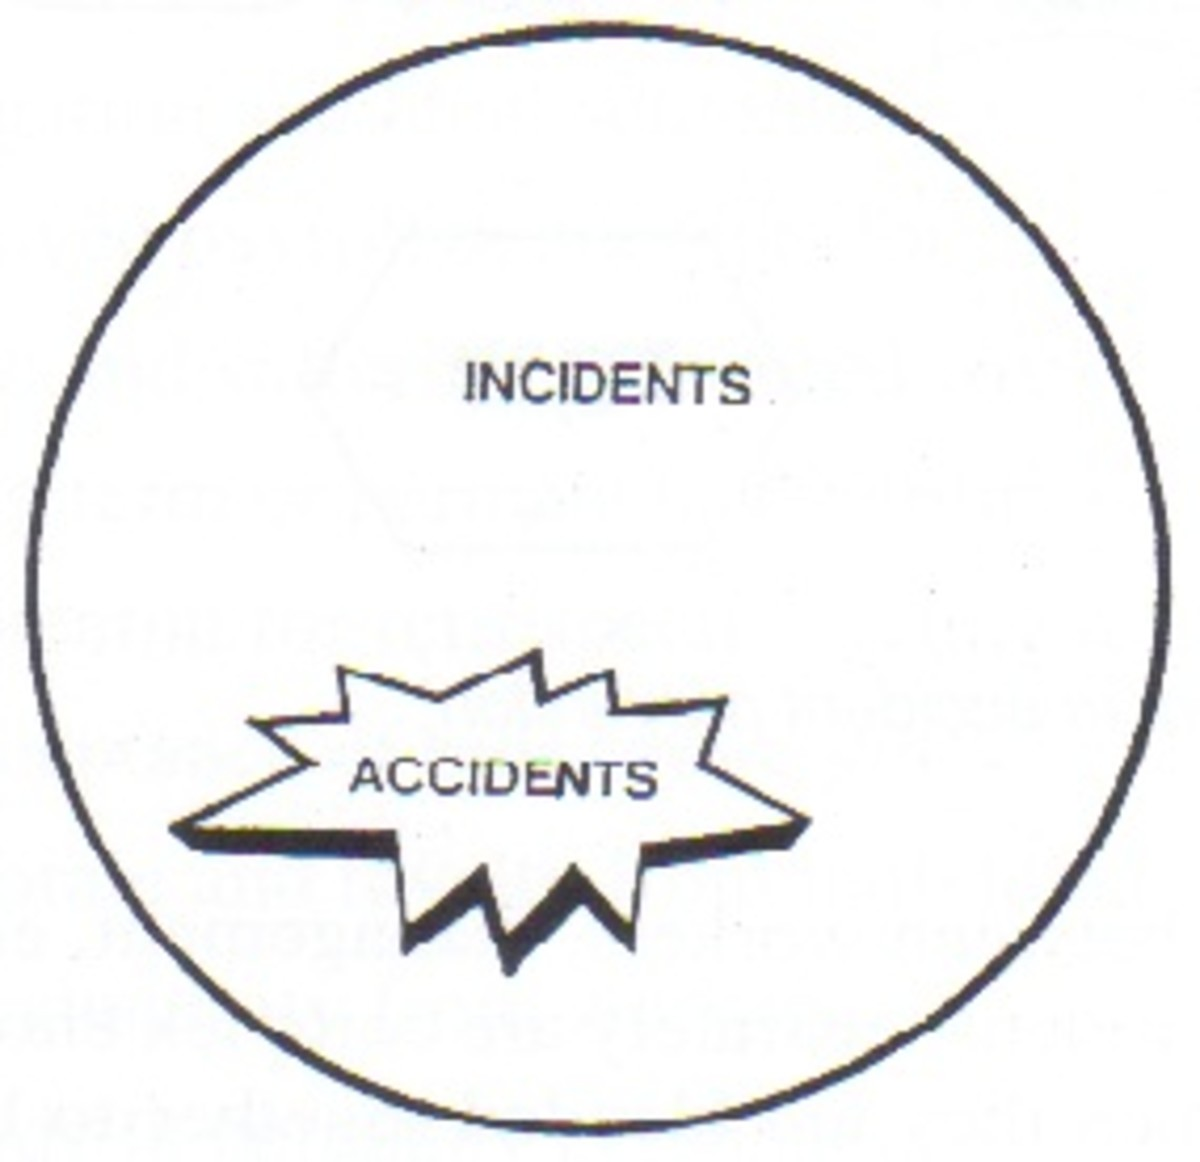 Accidents are a subset of Incidents